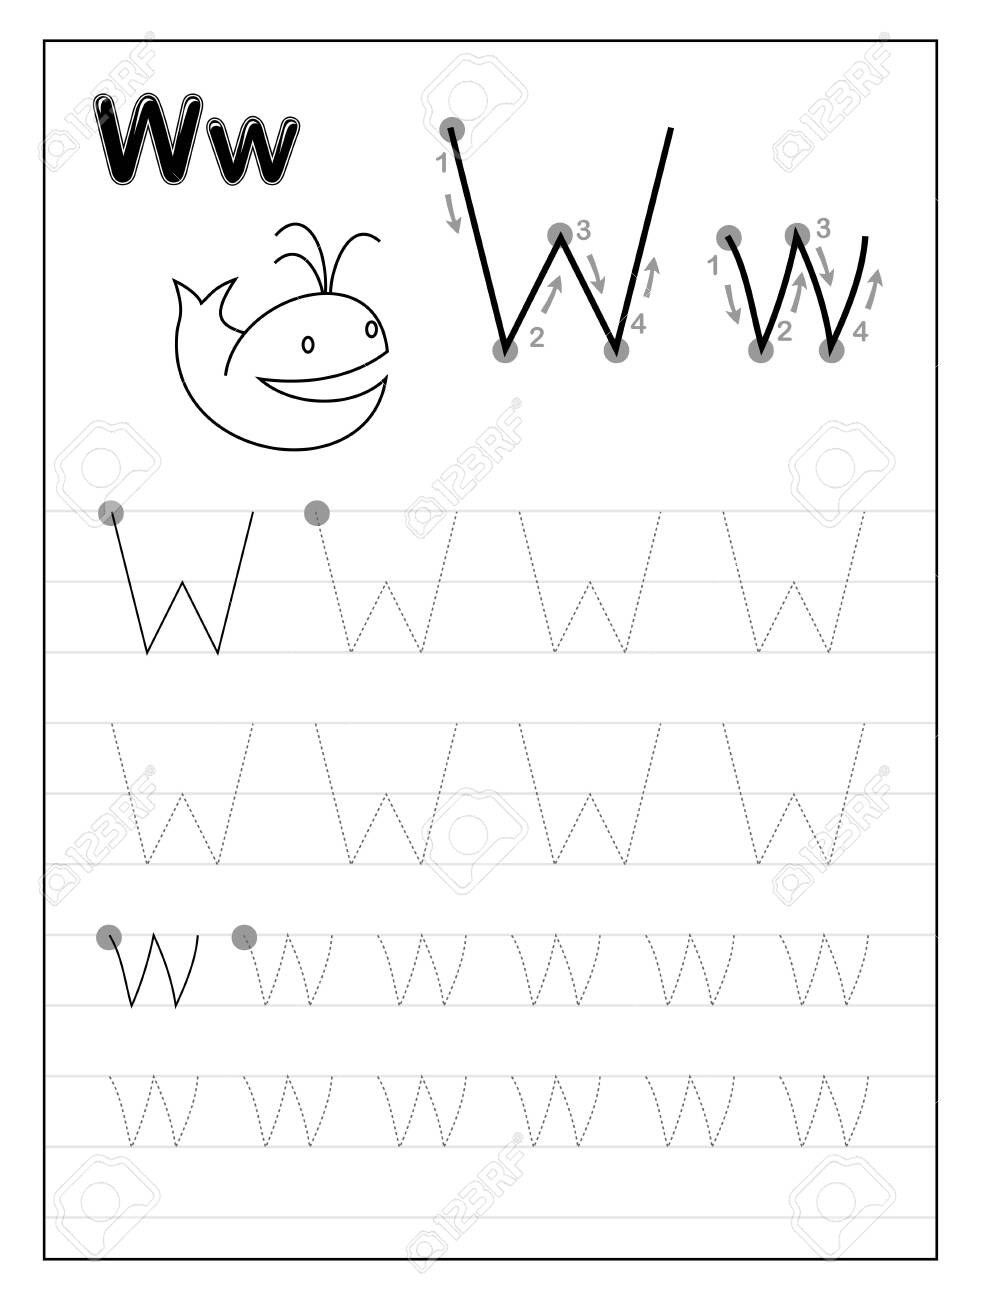 Worksheet ~ Dotted Alphabet Worksheets Worksheet Ideas with regard to W Letter Tracing